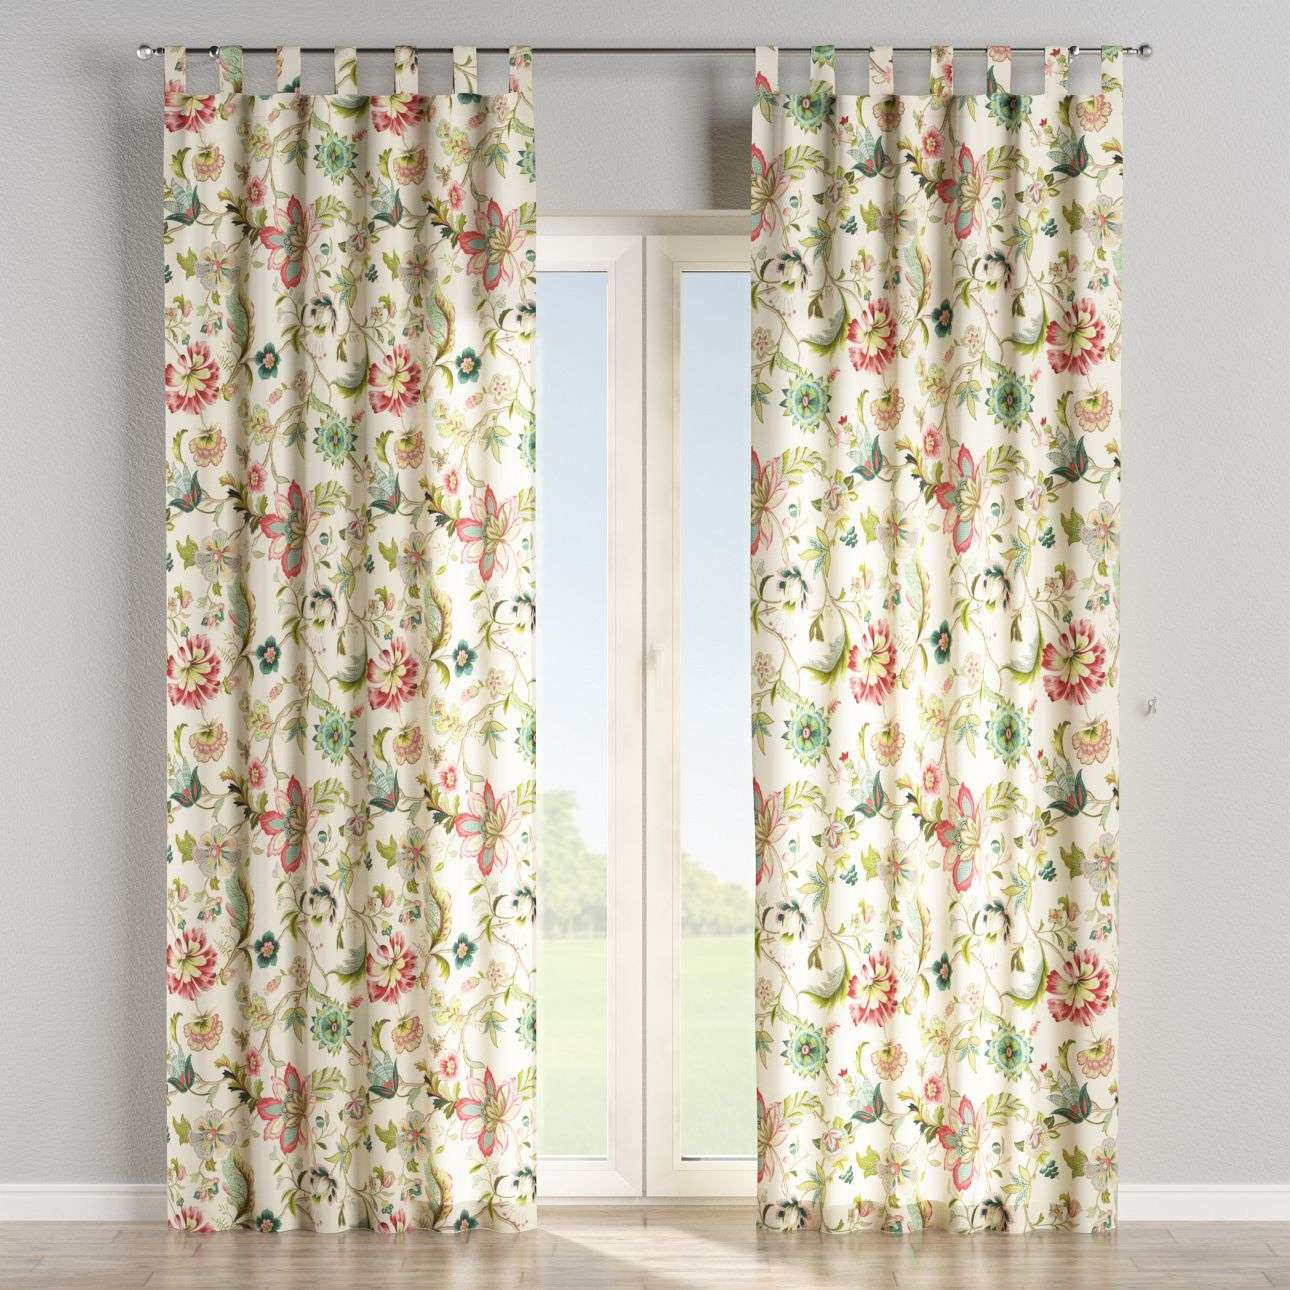 Tab top curtains 130 x 260 cm (51 x 102 inch) in collection Londres, fabric: 122-00